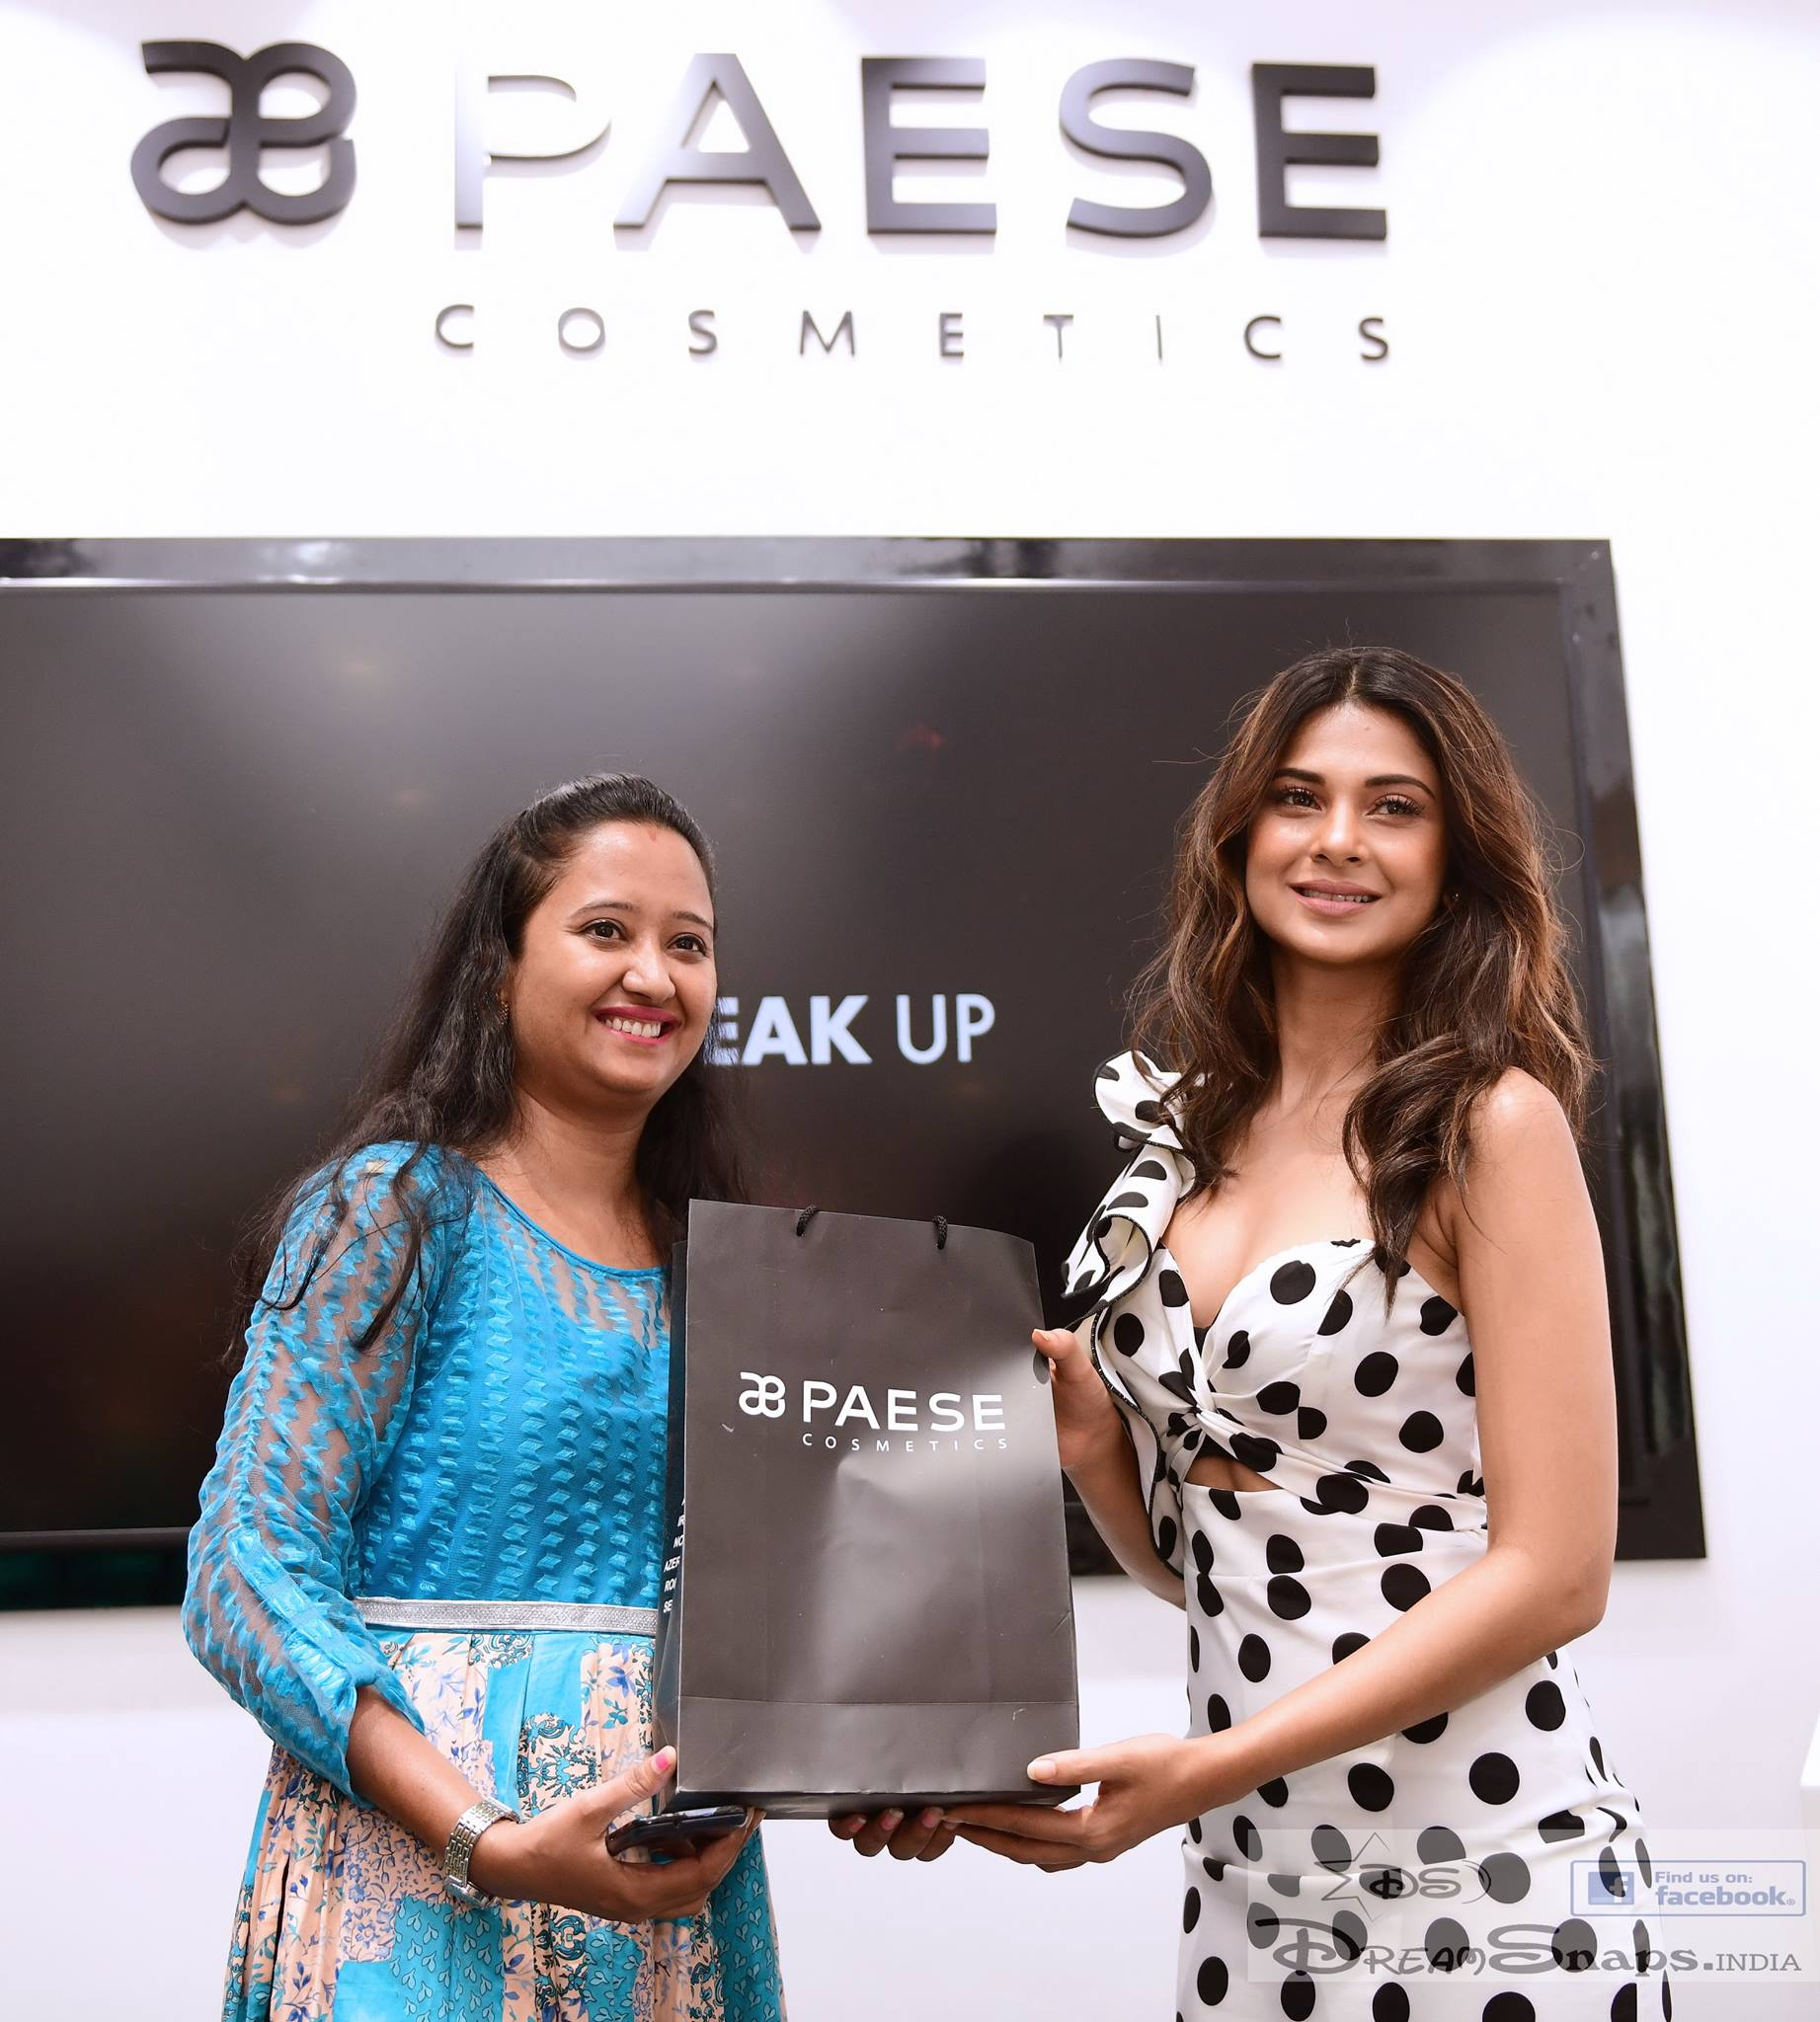 Paese Cosmetic – First impression